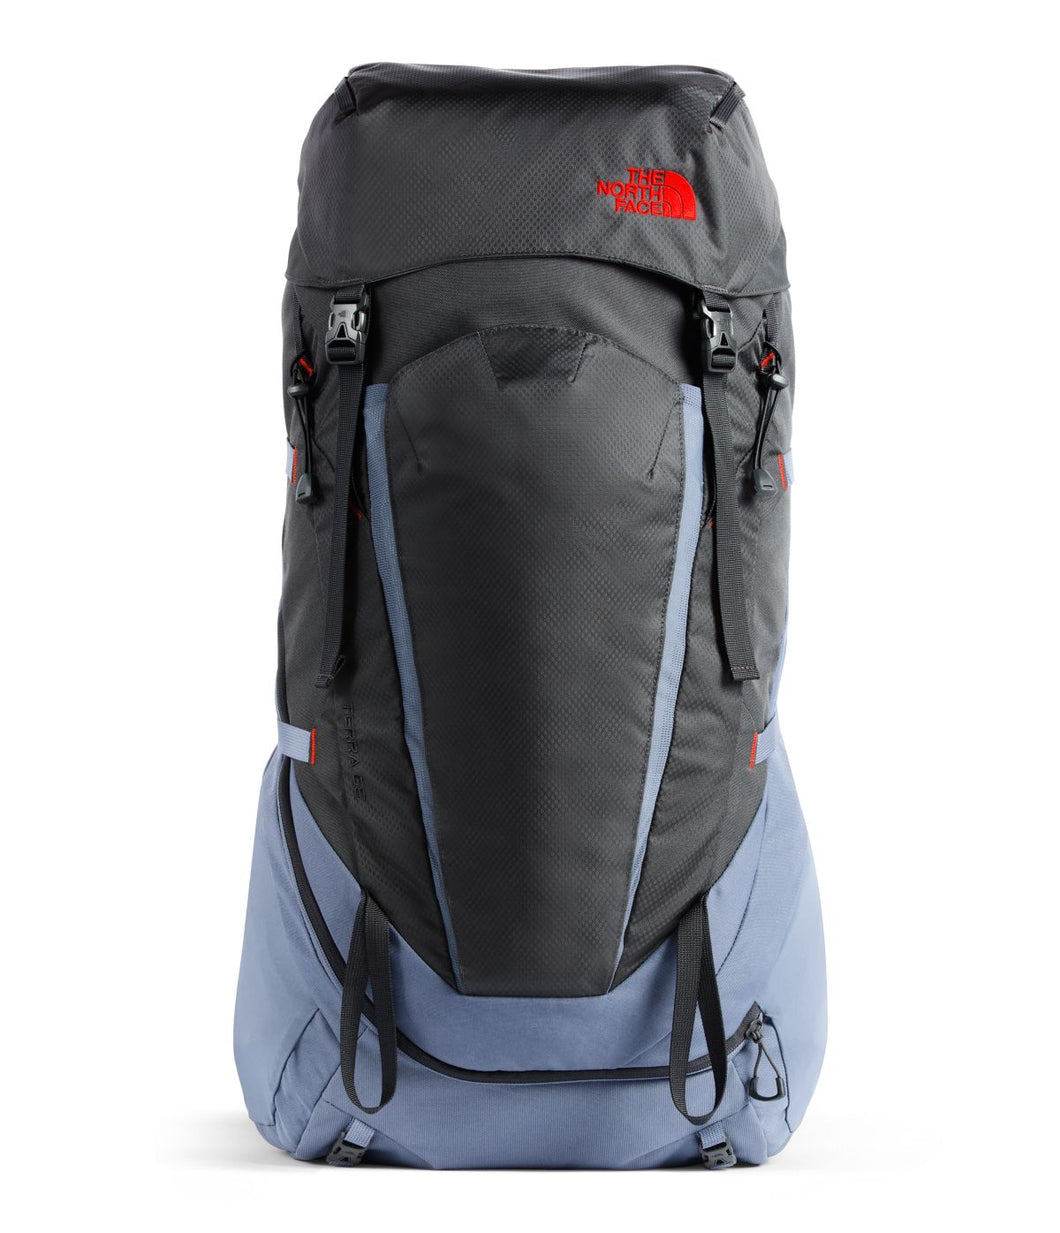 Unisex The North Face Terra 65 Backpack in TNF Black/TNF Black from front view